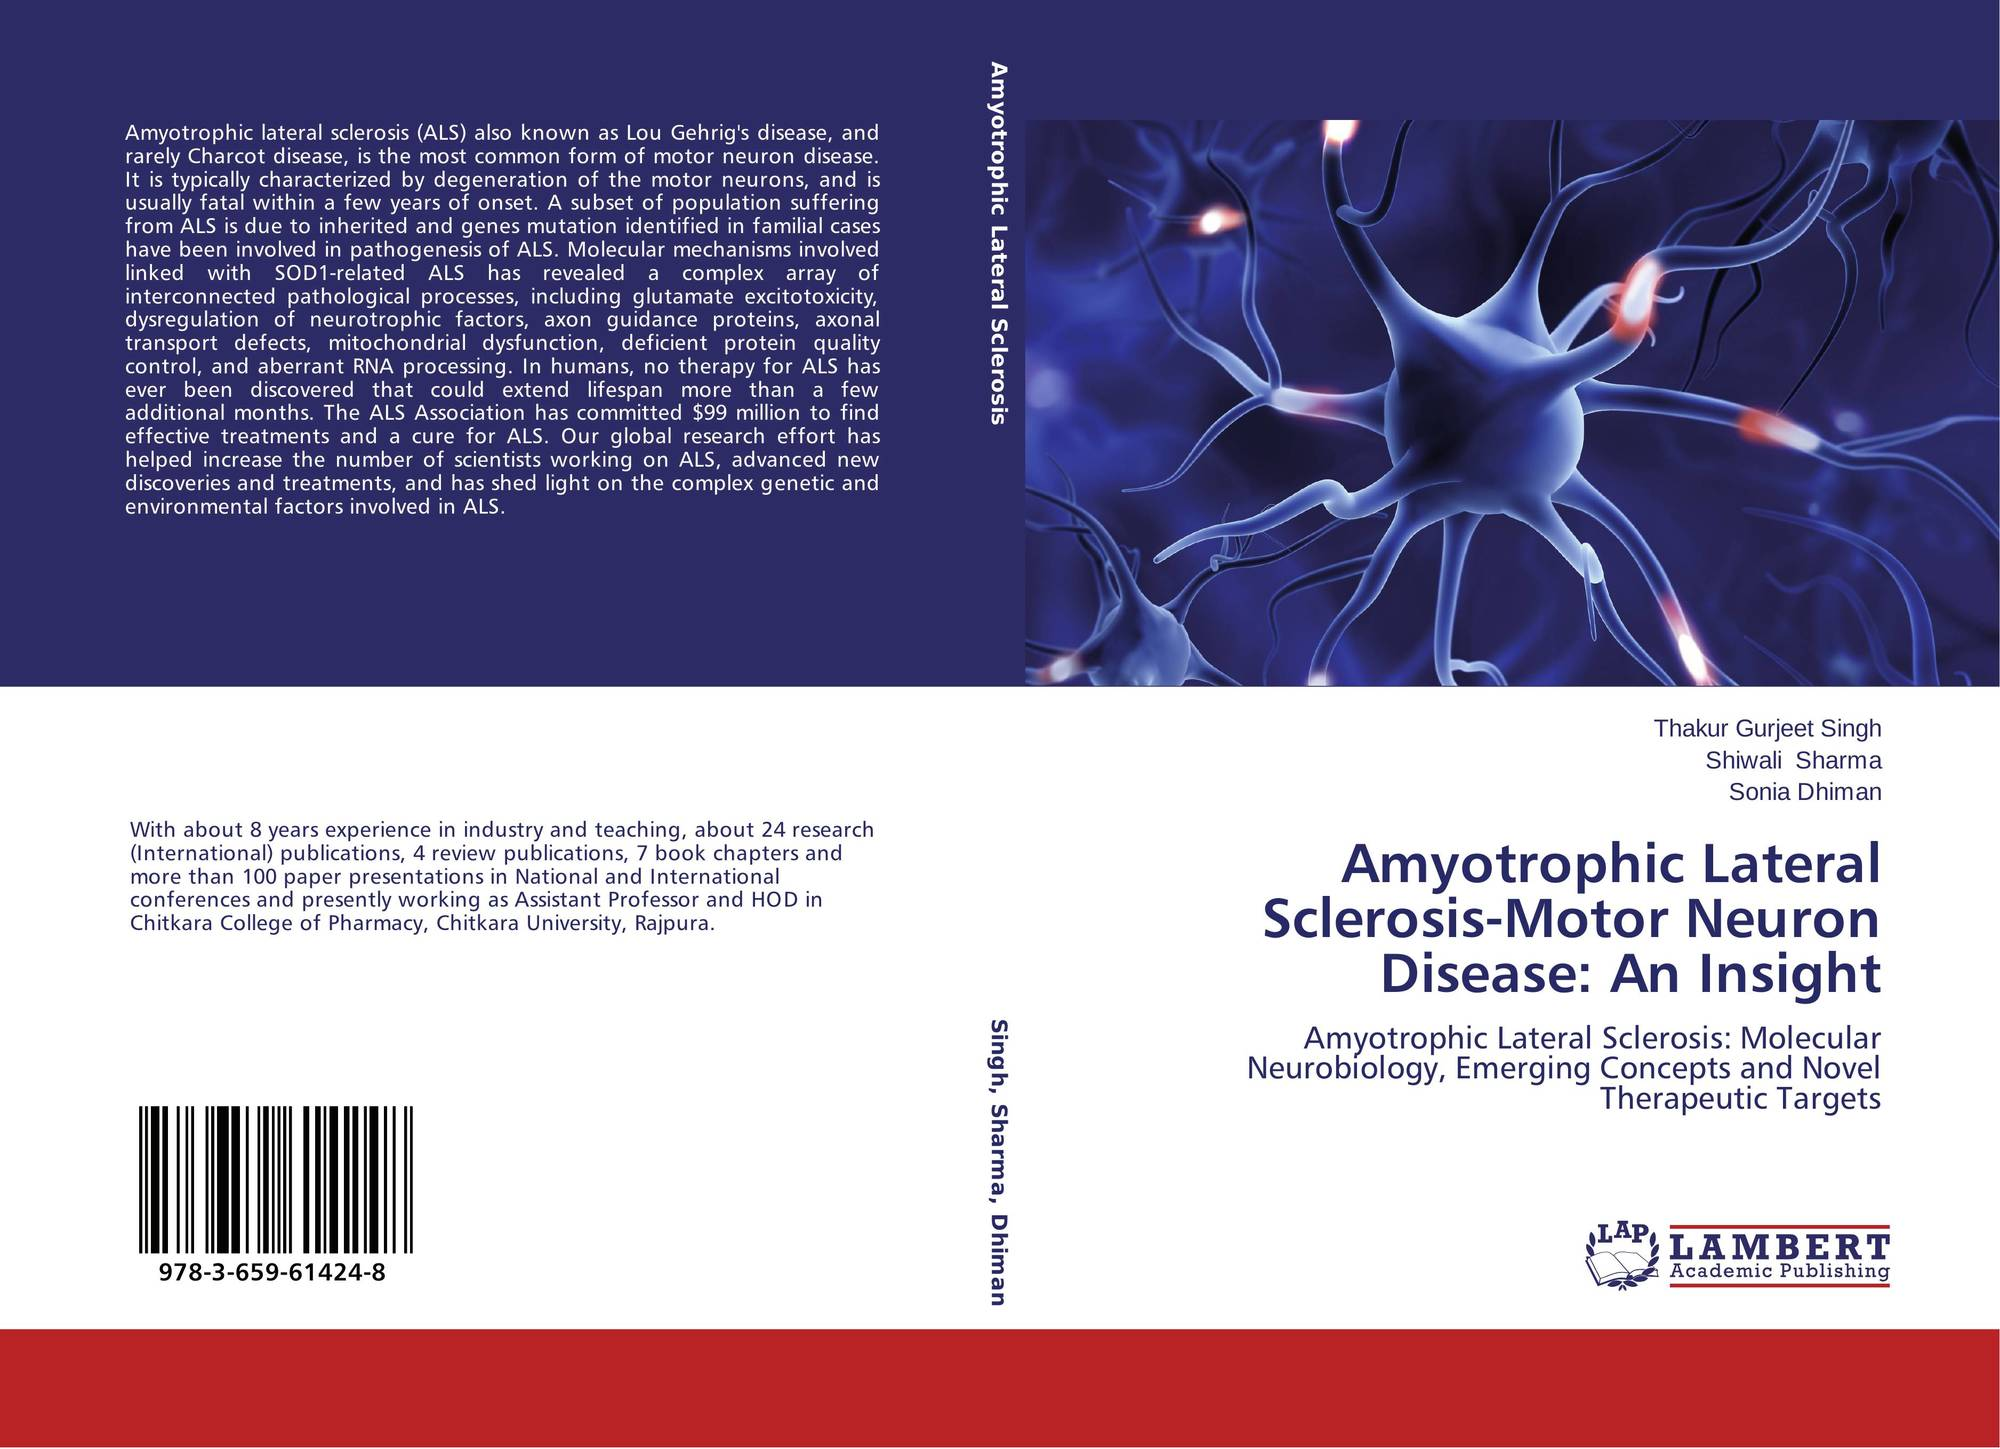 amyotrophic lateral sclerosis research paper